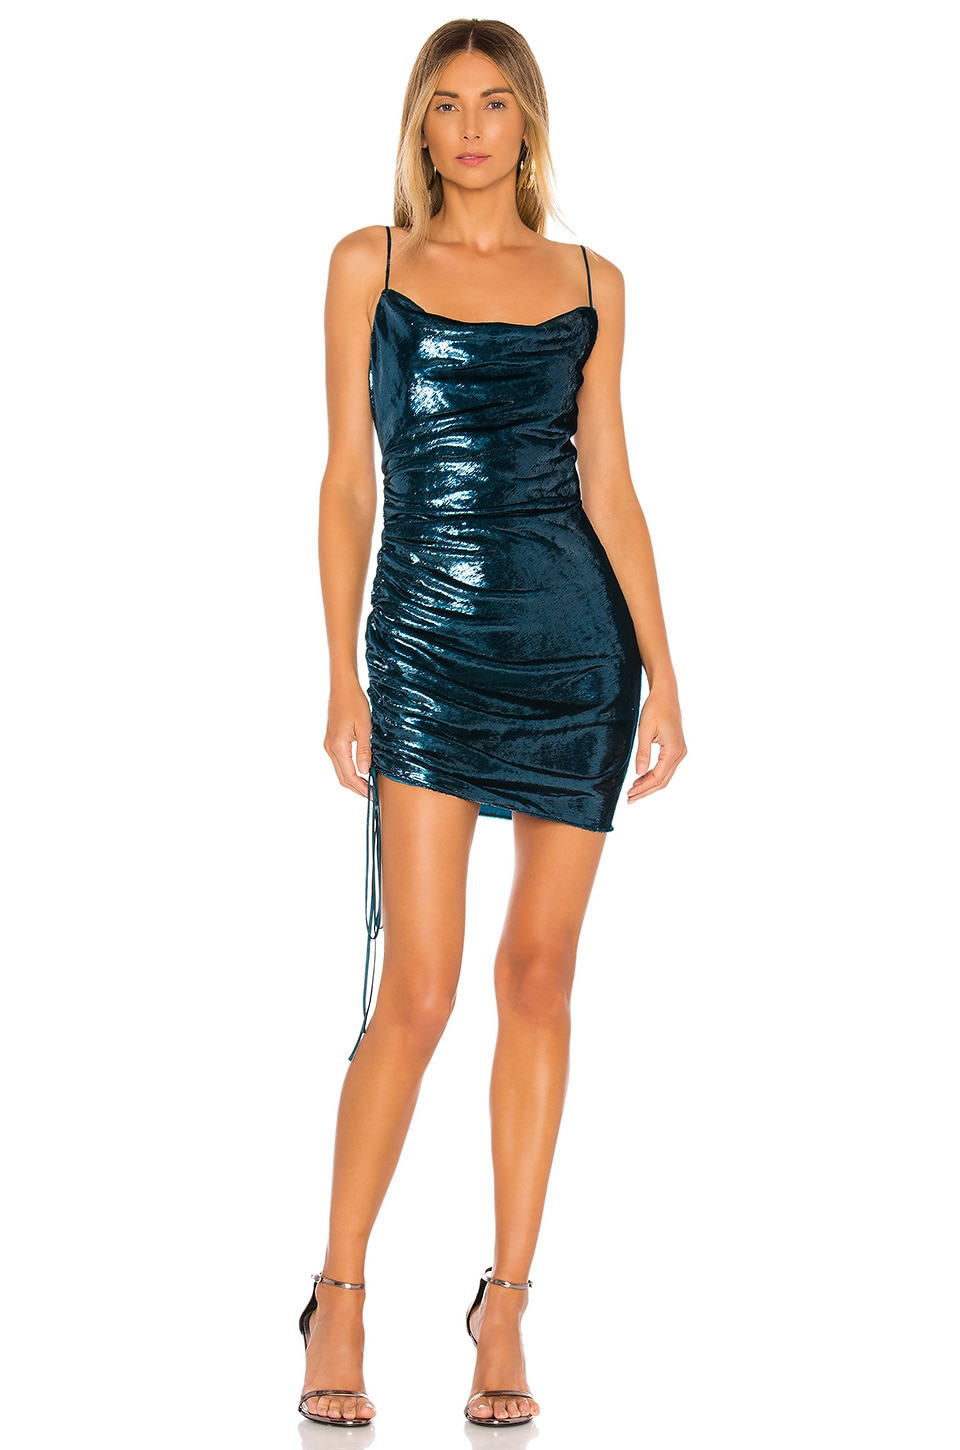 Cinq a Sept Shiny Astrid Dress in Teal Topaz